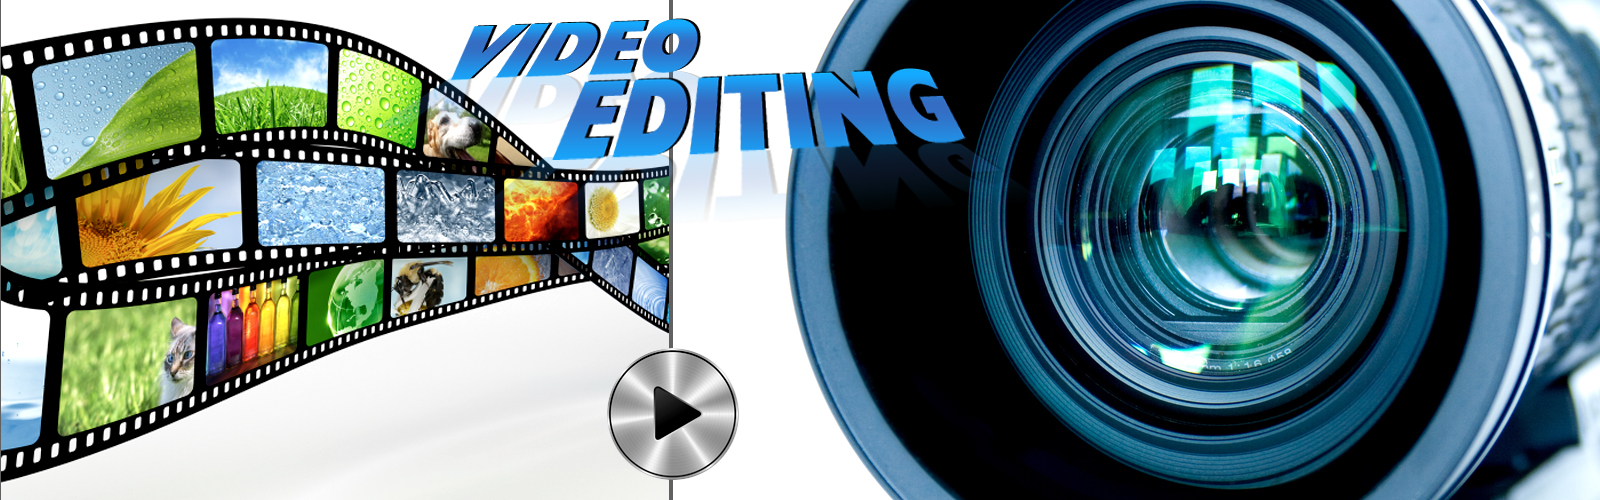 Video Editing Simplified